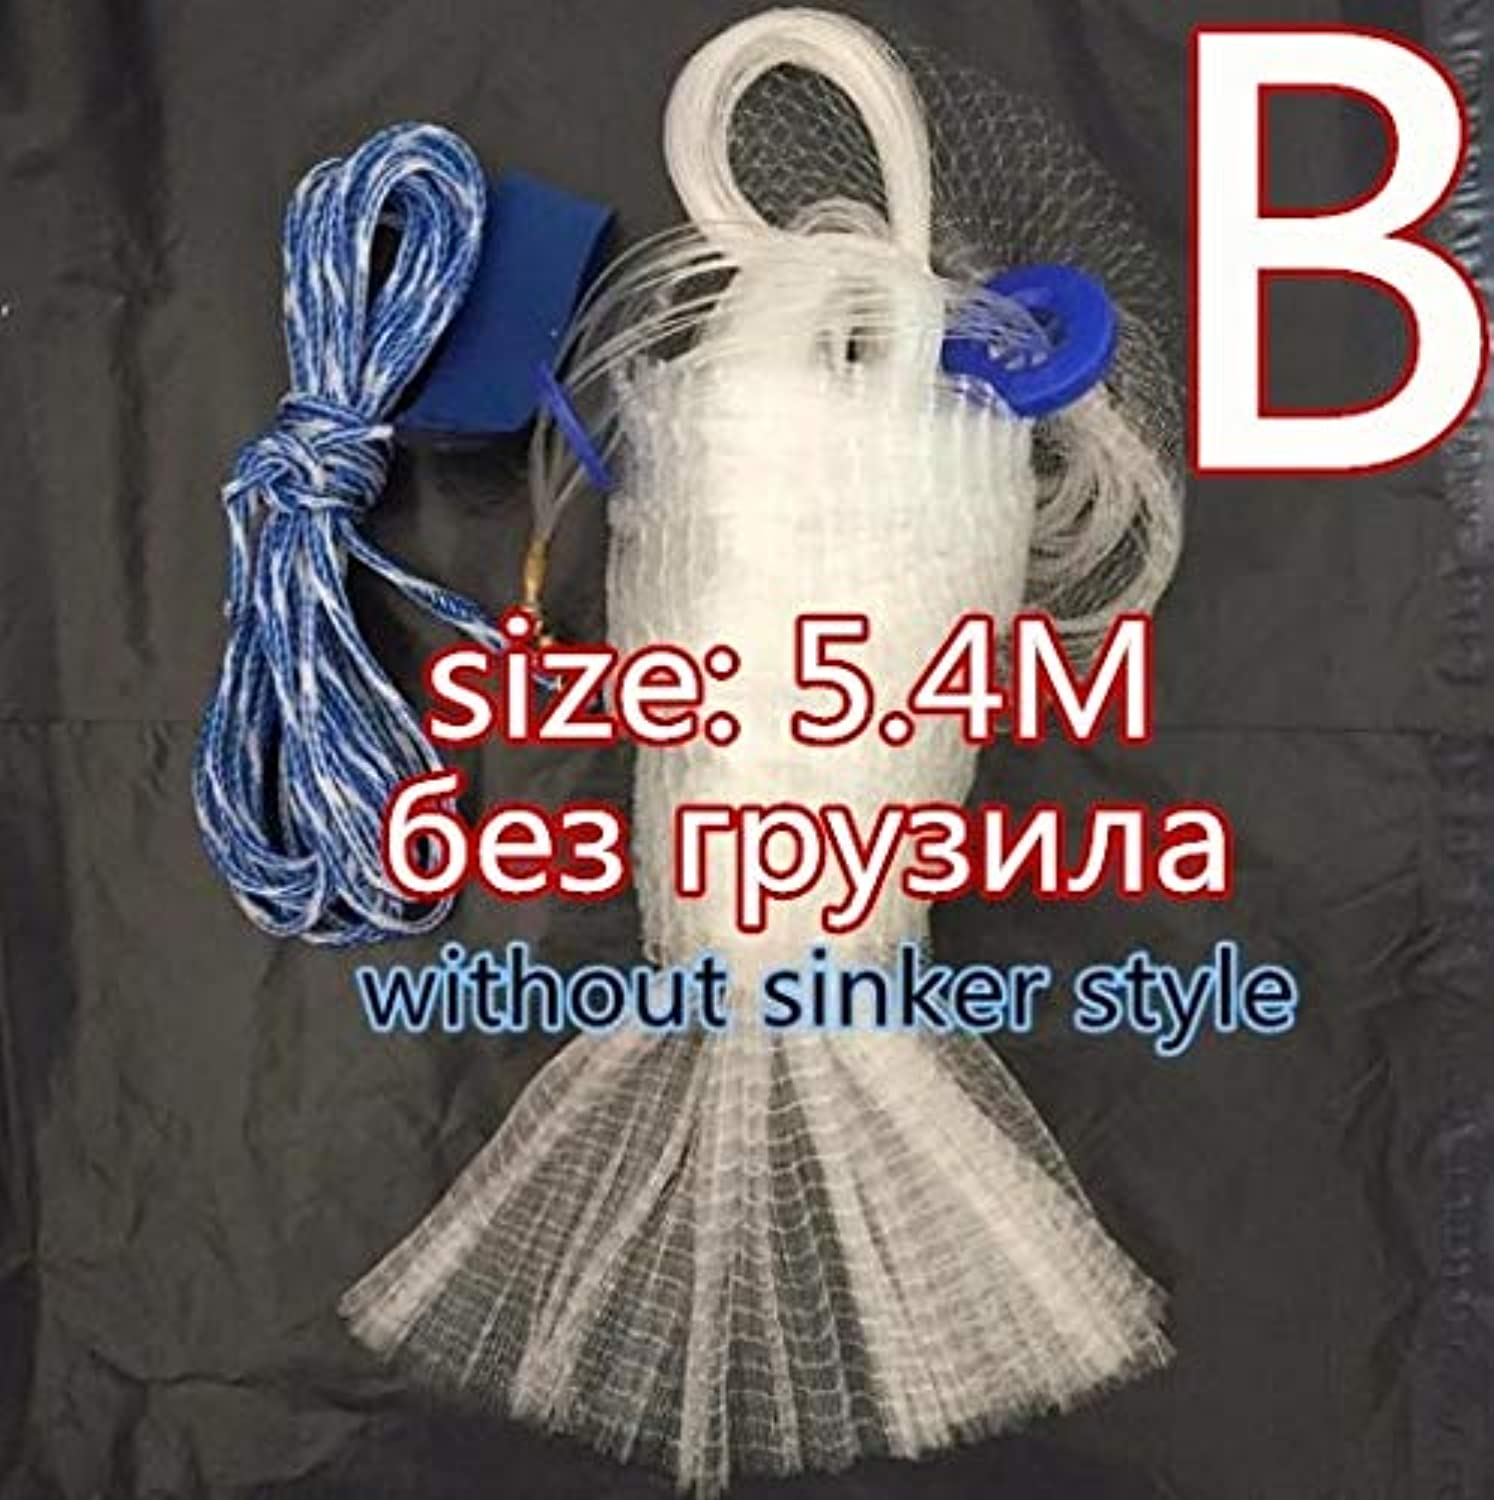 Finefish Cast Net 2.4M7.2M Size Fishing Network Fly USA Hand Cast Net Outdoor Spreds Throw Catch Fishing Net Tool Gill net   540cm Without Sinker